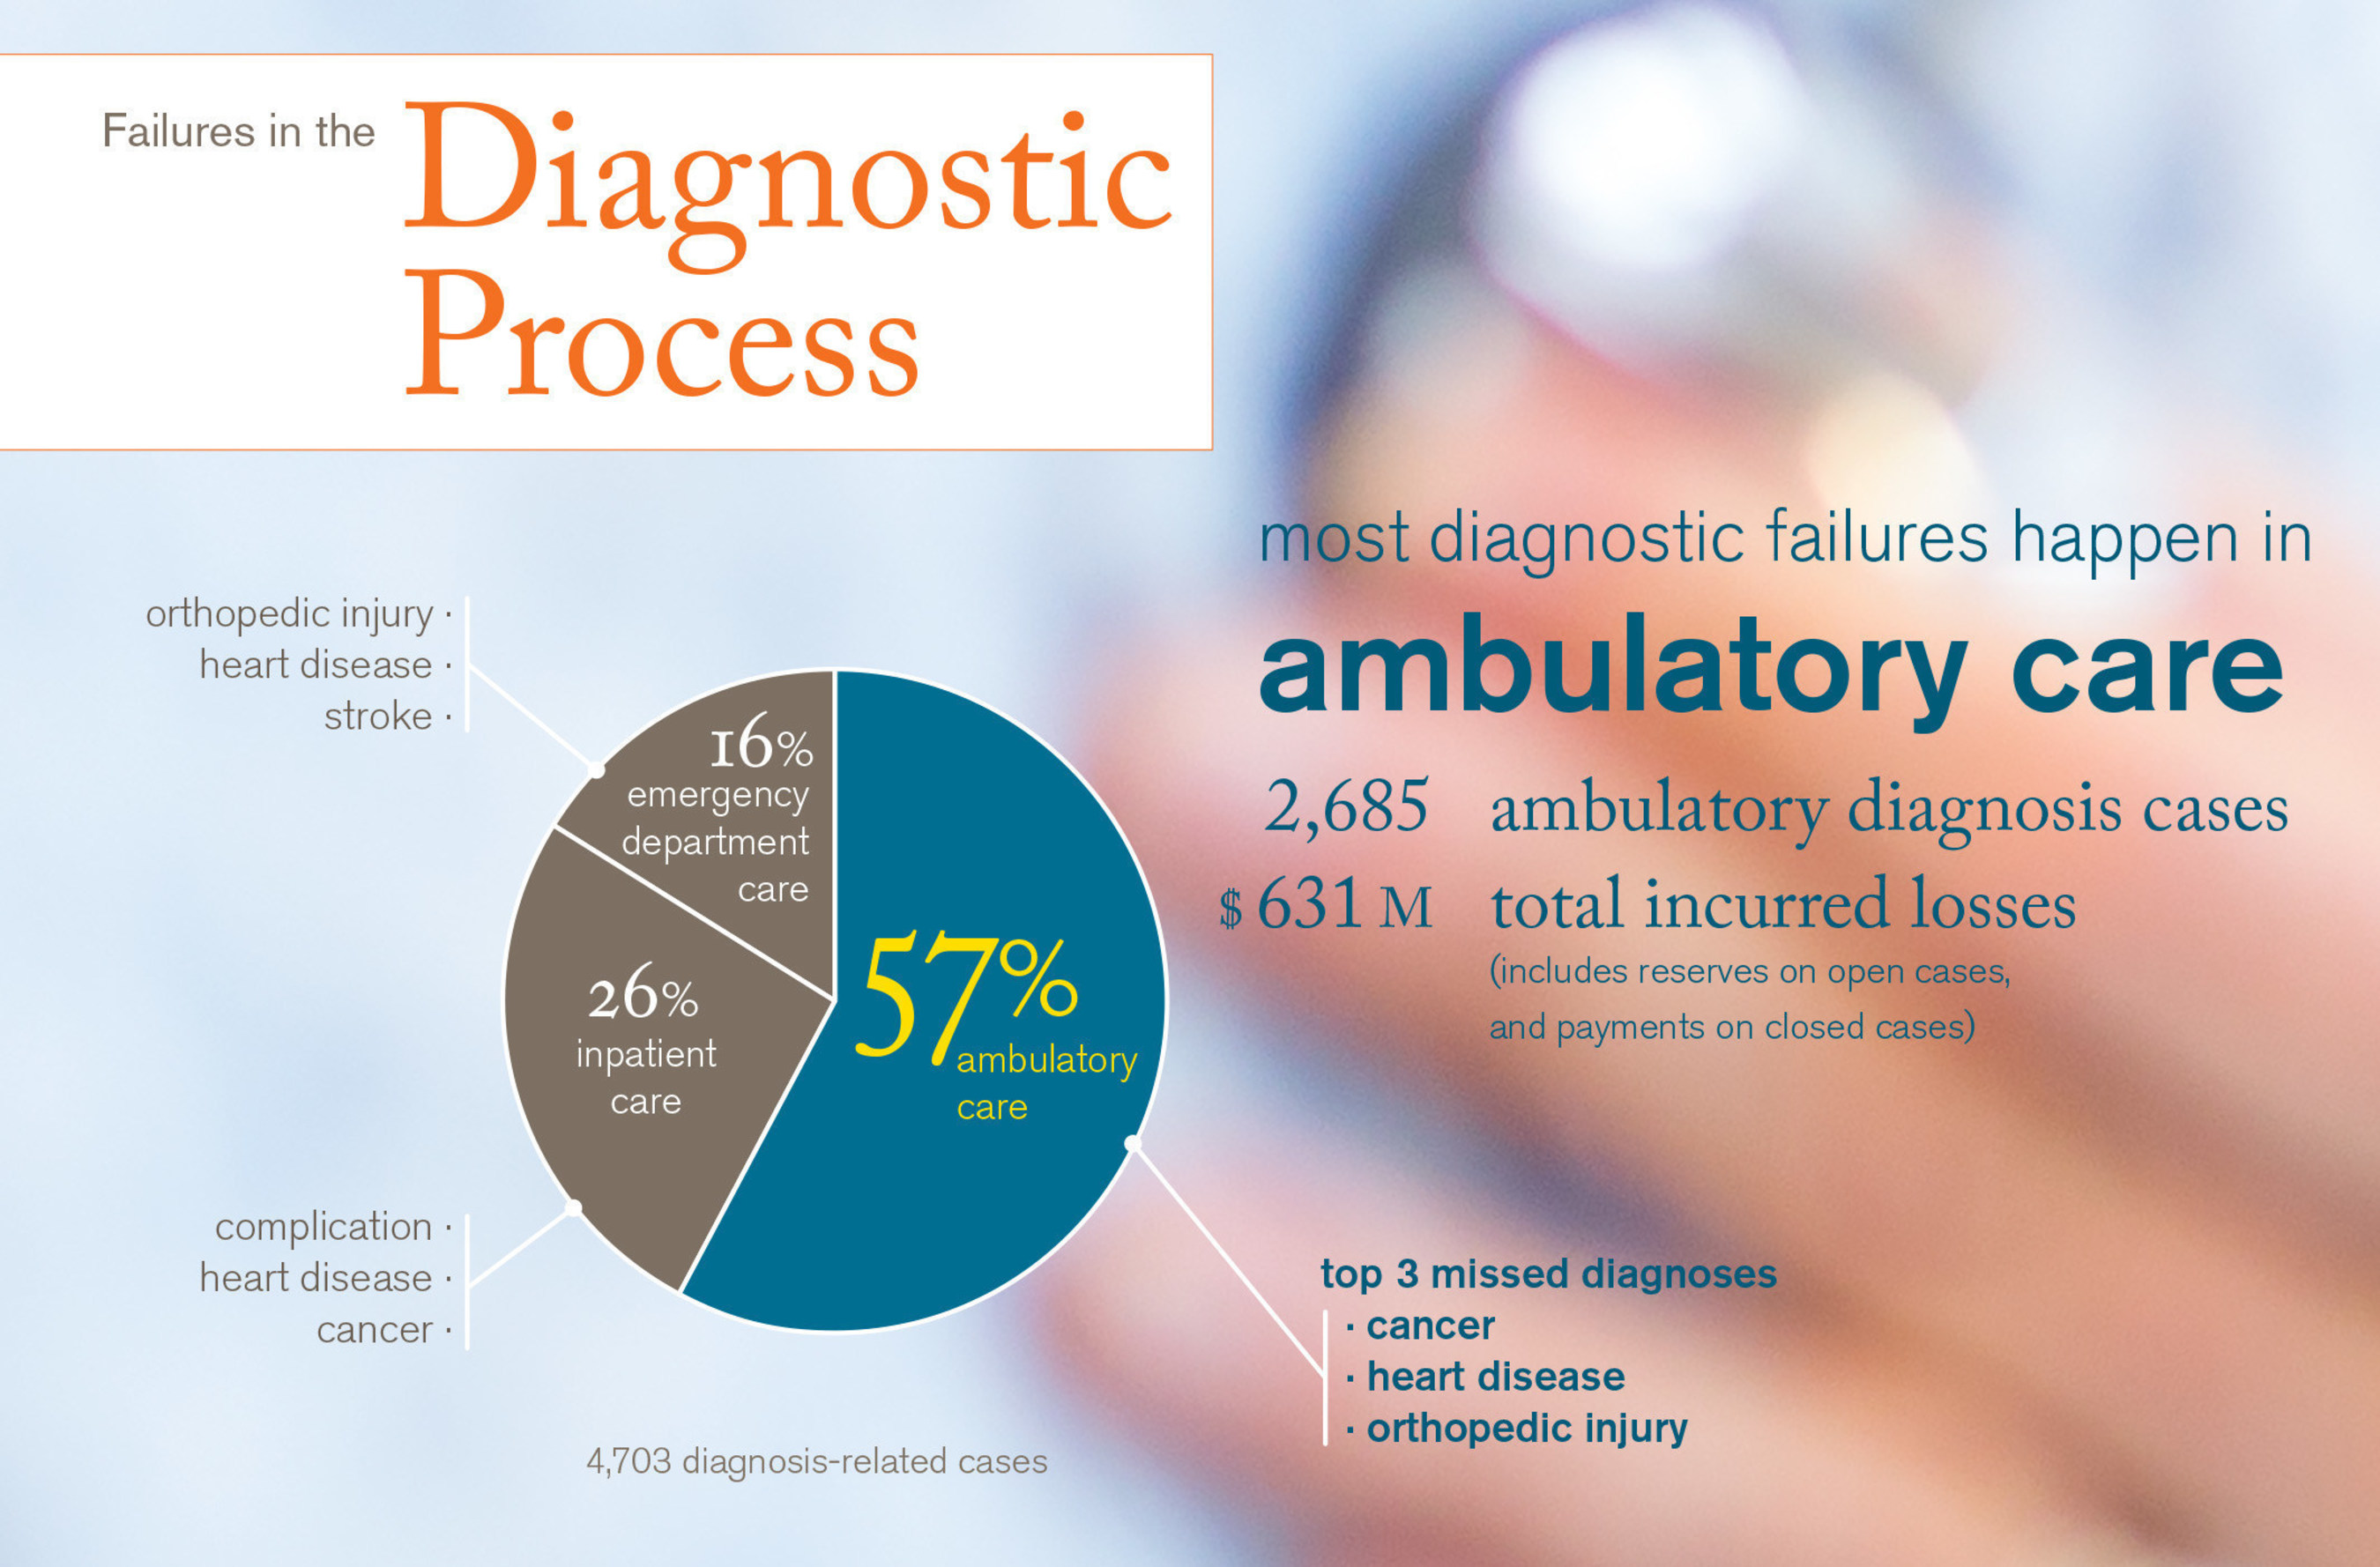 Excerpt from CRICO Strategies 2014 Annual Benchmarking Report: Malpractice Risks in the Diagnostic Process